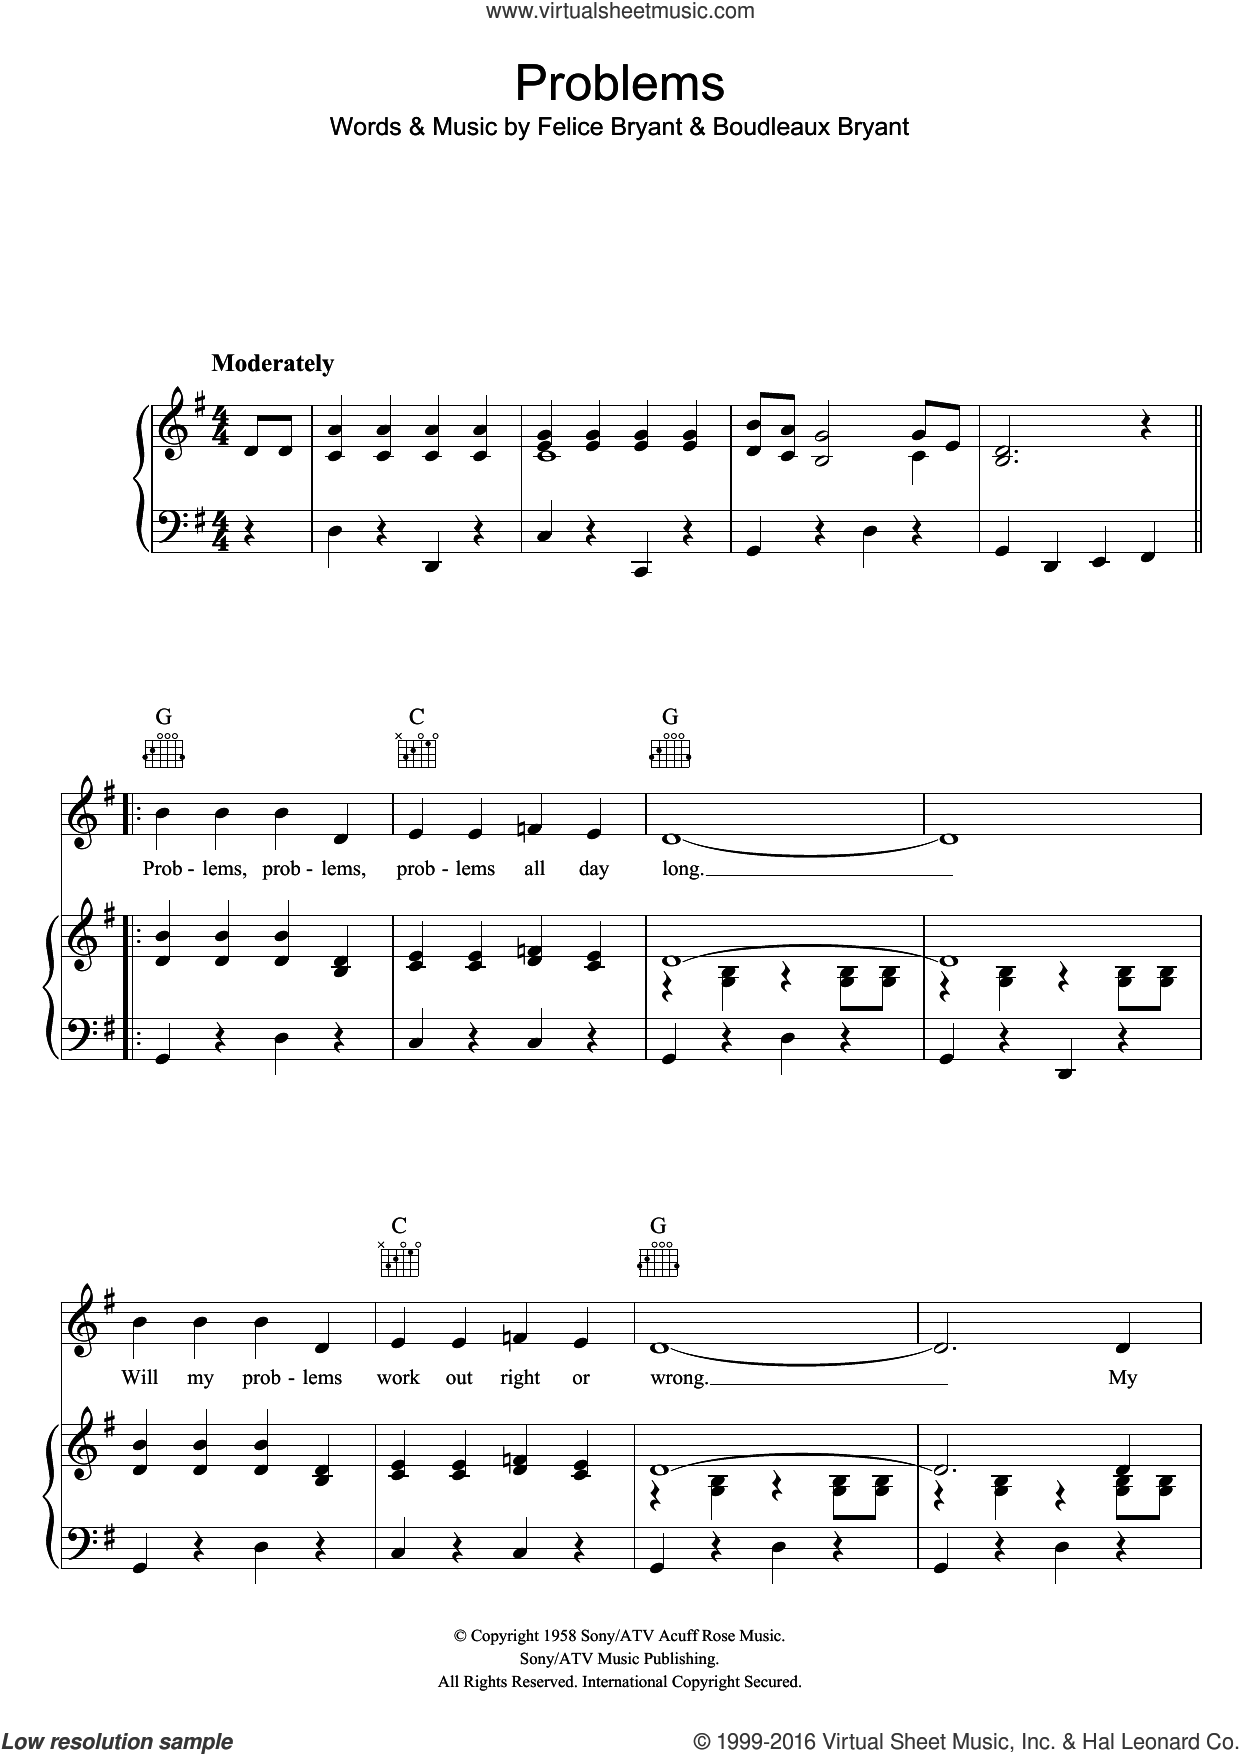 Problems sheet music for voice, piano or guitar by The Everly Brothers, Boudleaux Bryant and Felice Bryant, intermediate skill level